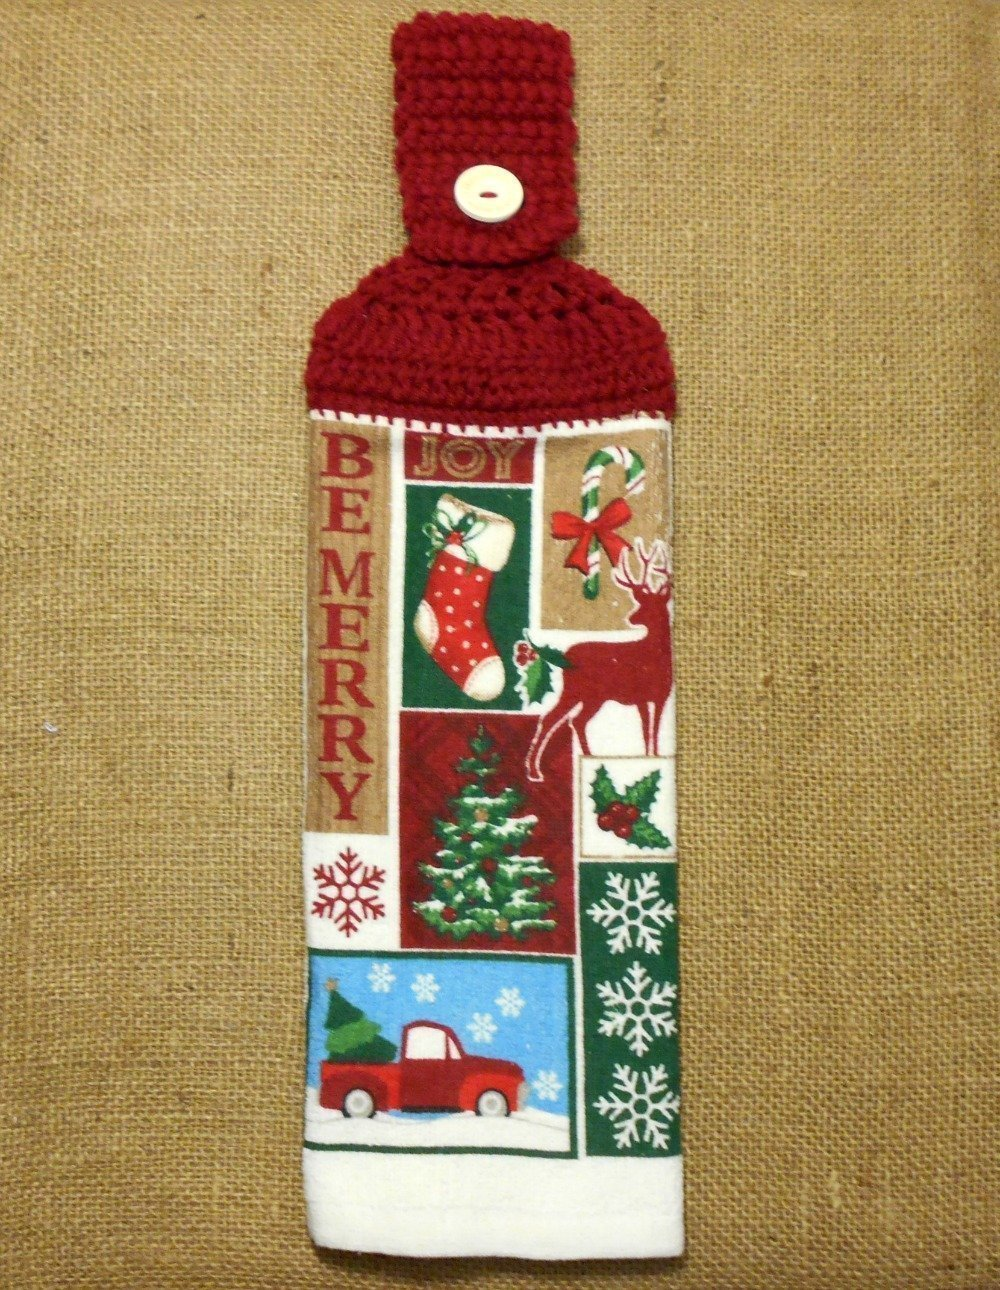 Rustic Holiday Themed Hanging Dish Towel Double Sided With A Crochet Top, Christmas Kitchen Decor